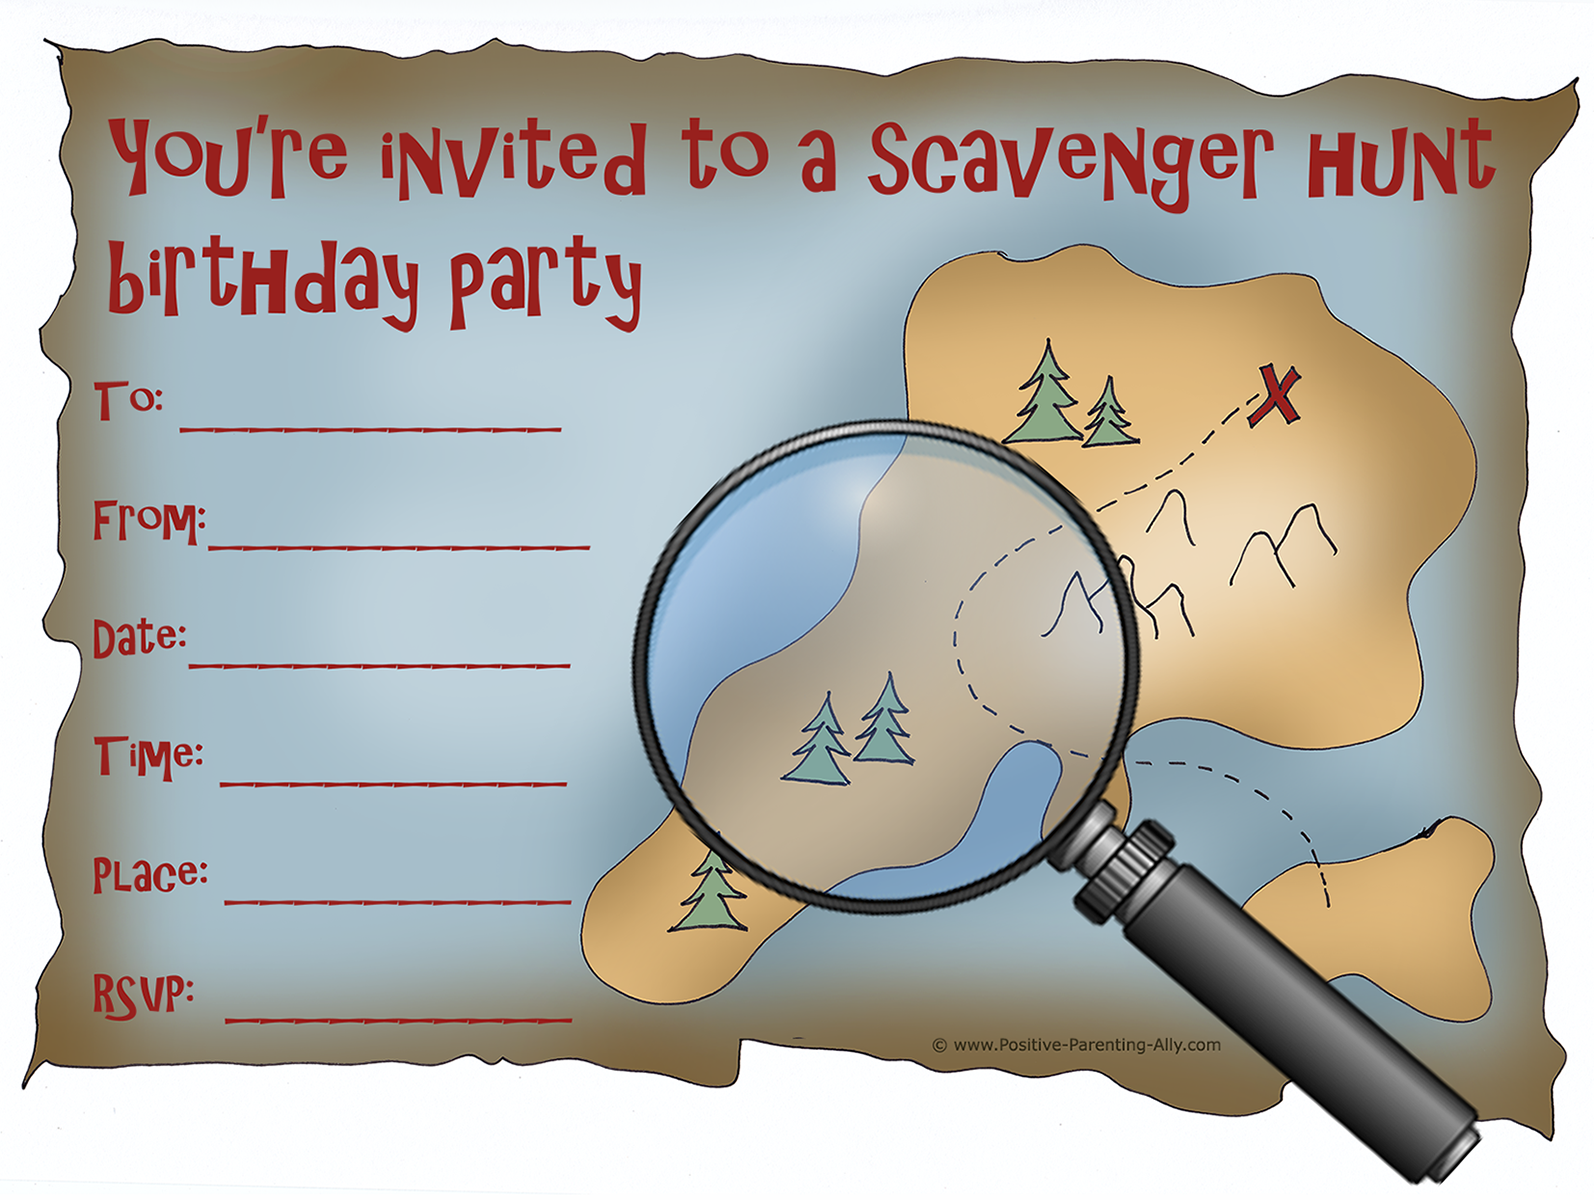 Scavenger hunt pritable birthday invitation with treasure map to print.